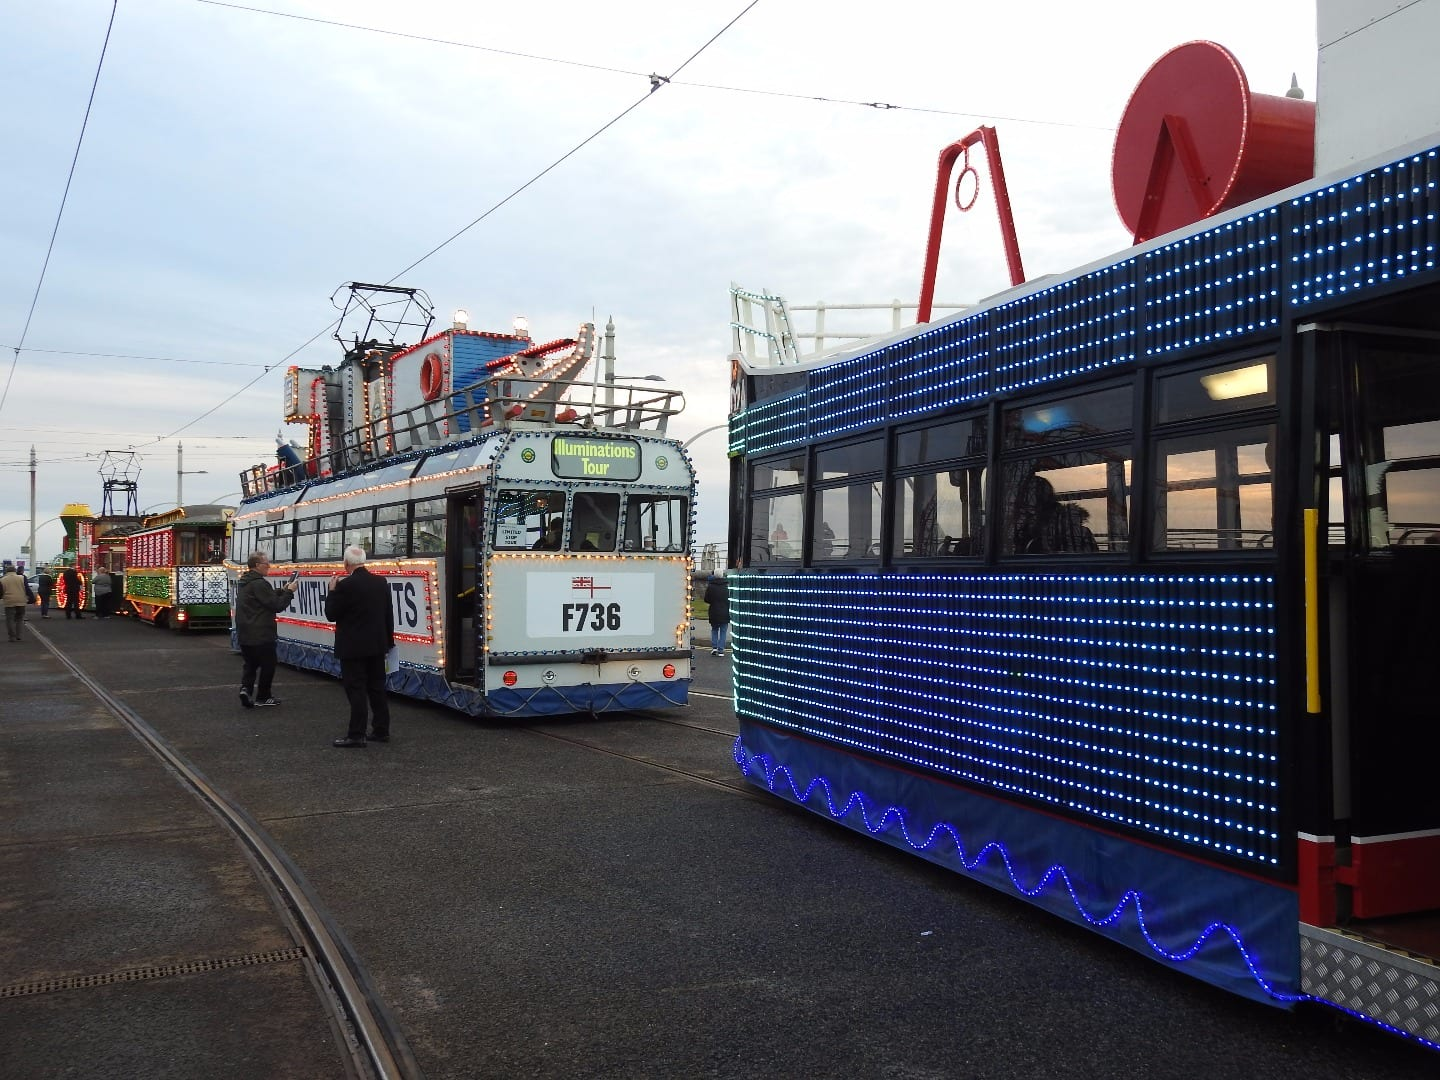 At Pleasure Beach the three trams begin to glow as dusk approaches.